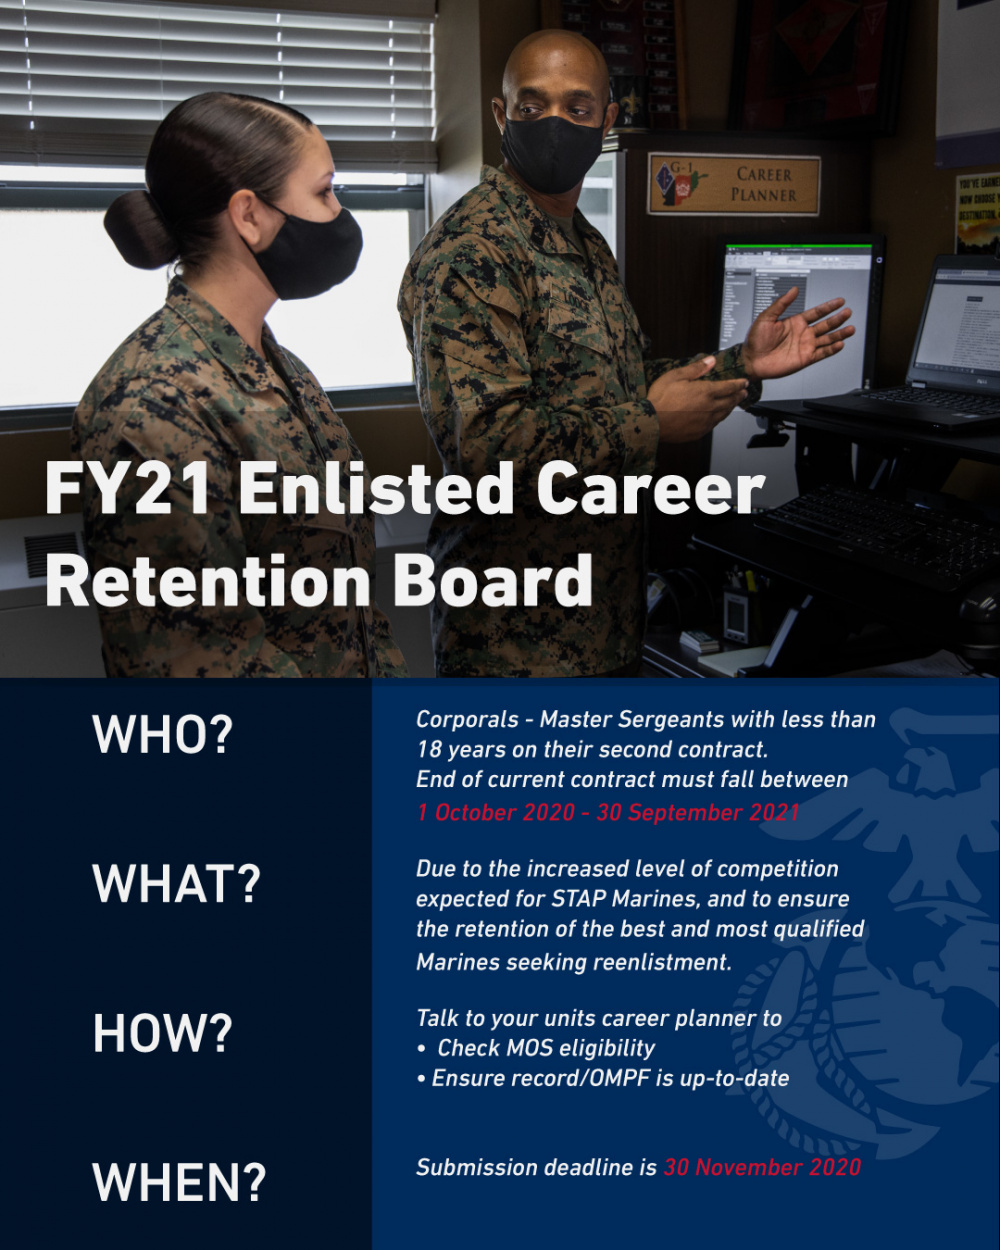 FY21 Enlisted Career Retention Board